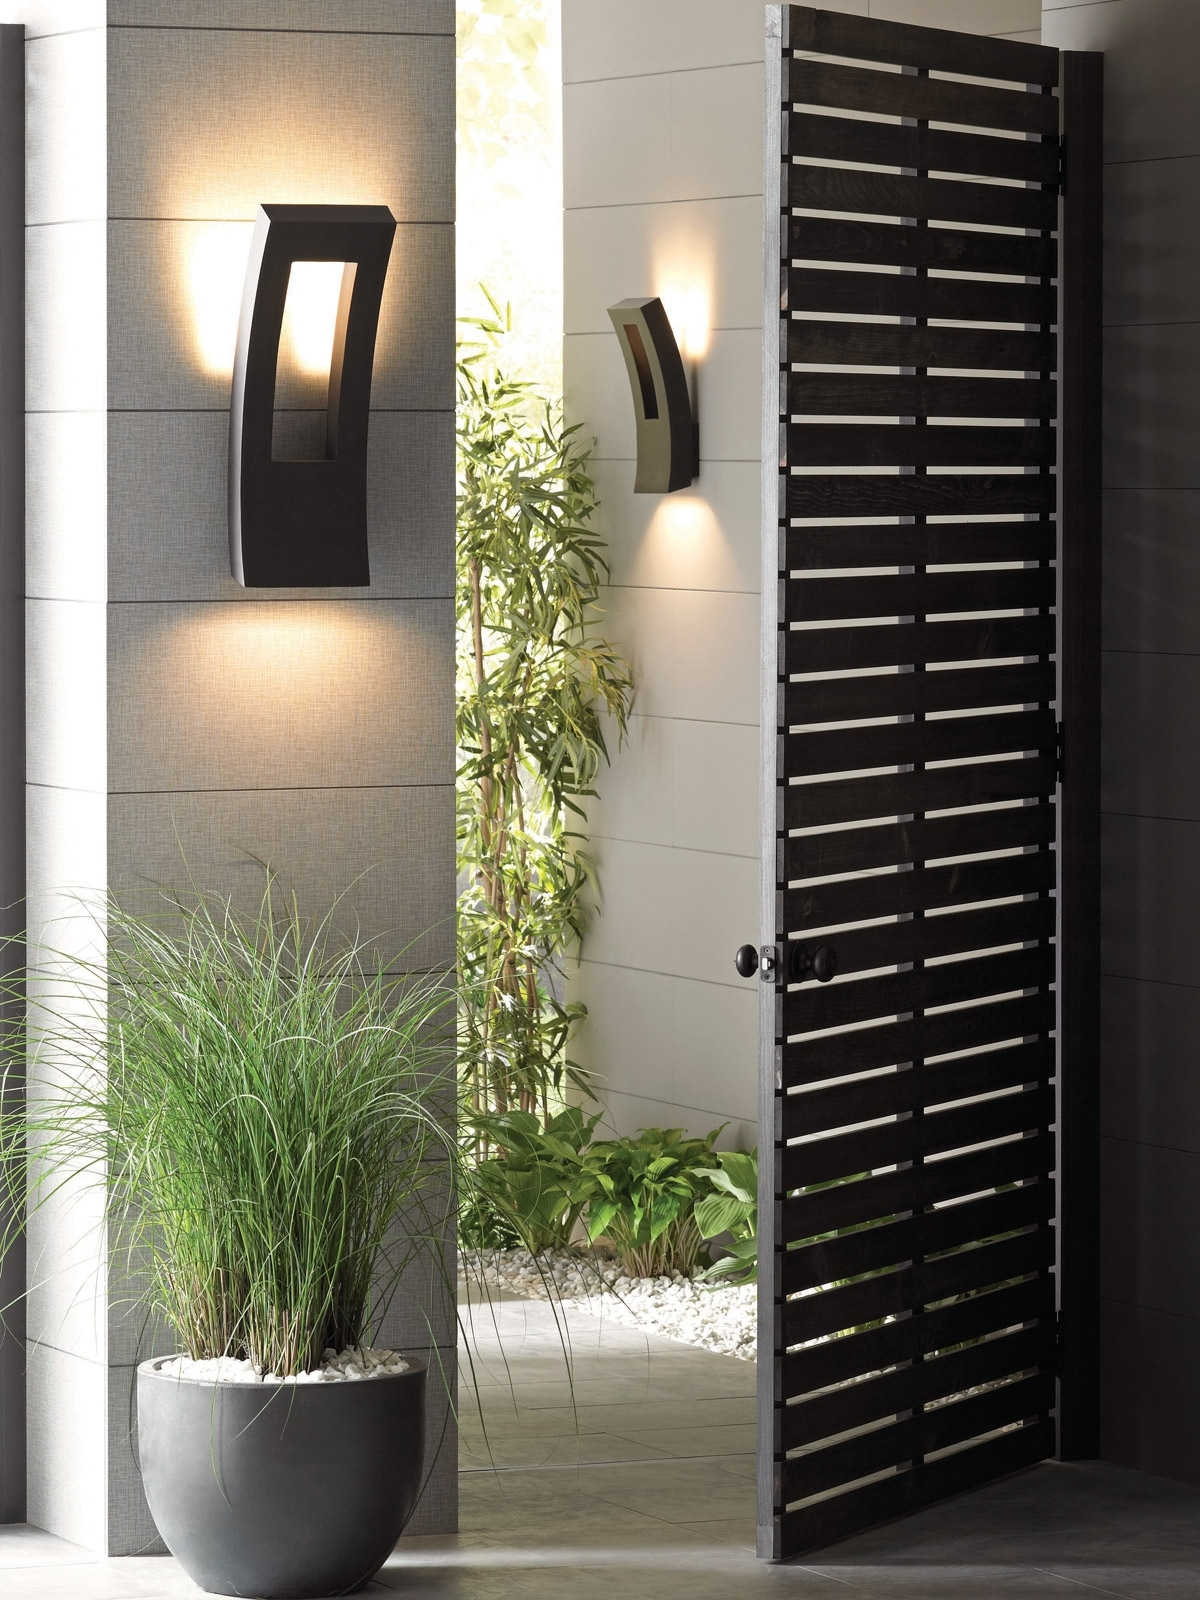 Commercial Outdoor Wall Lighting For Most Current Light : Good Commercial Exterior Wall Mounted Light Fixtures Outside (View 5 of 20)